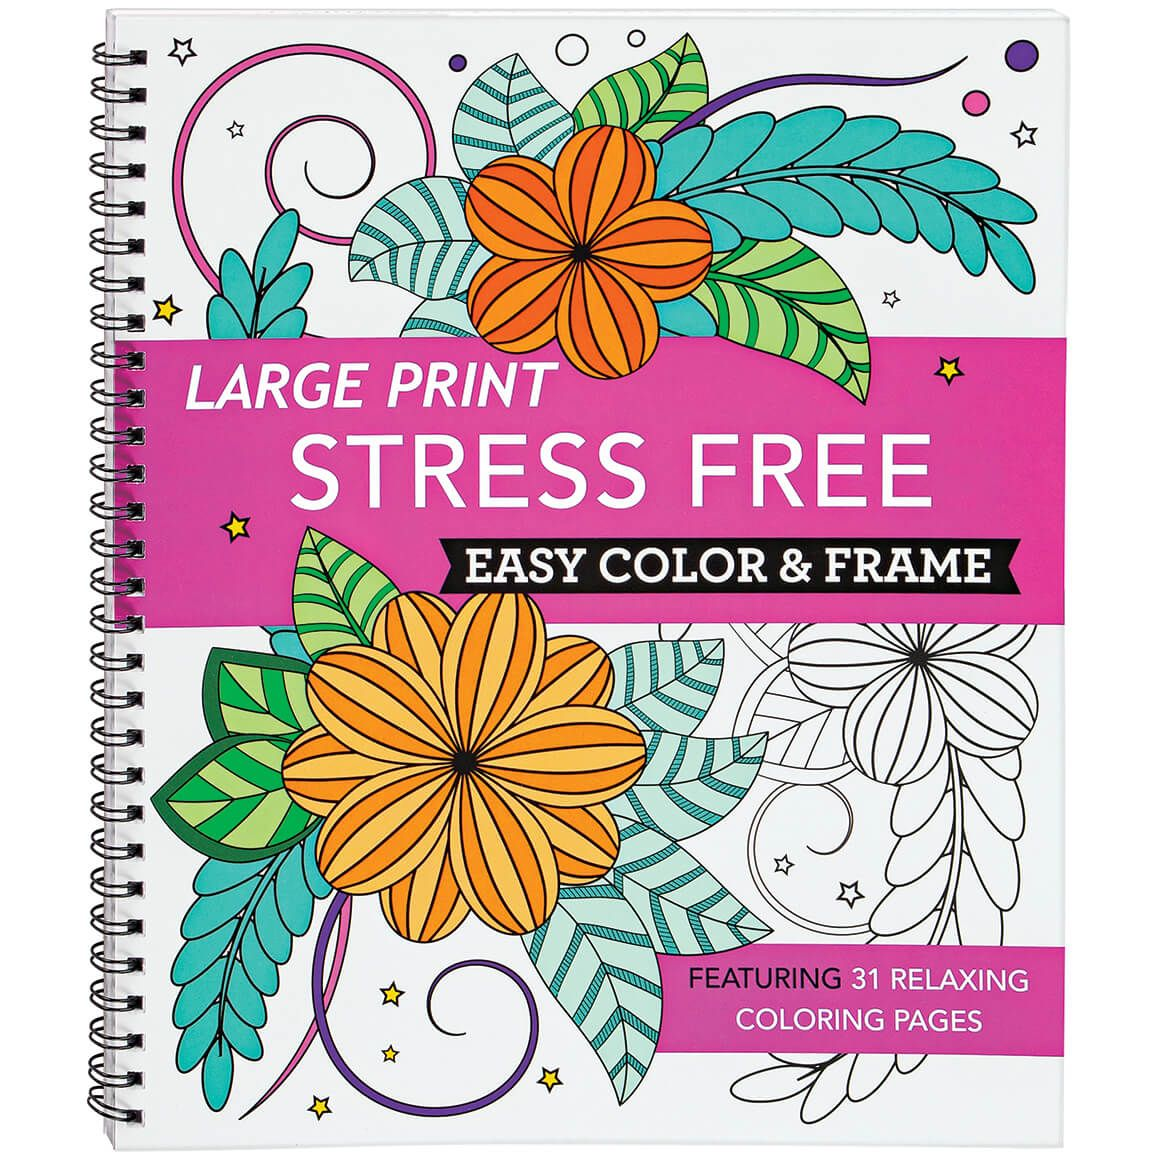 Large Print Stress Free Easy Color & Frame Book-371795